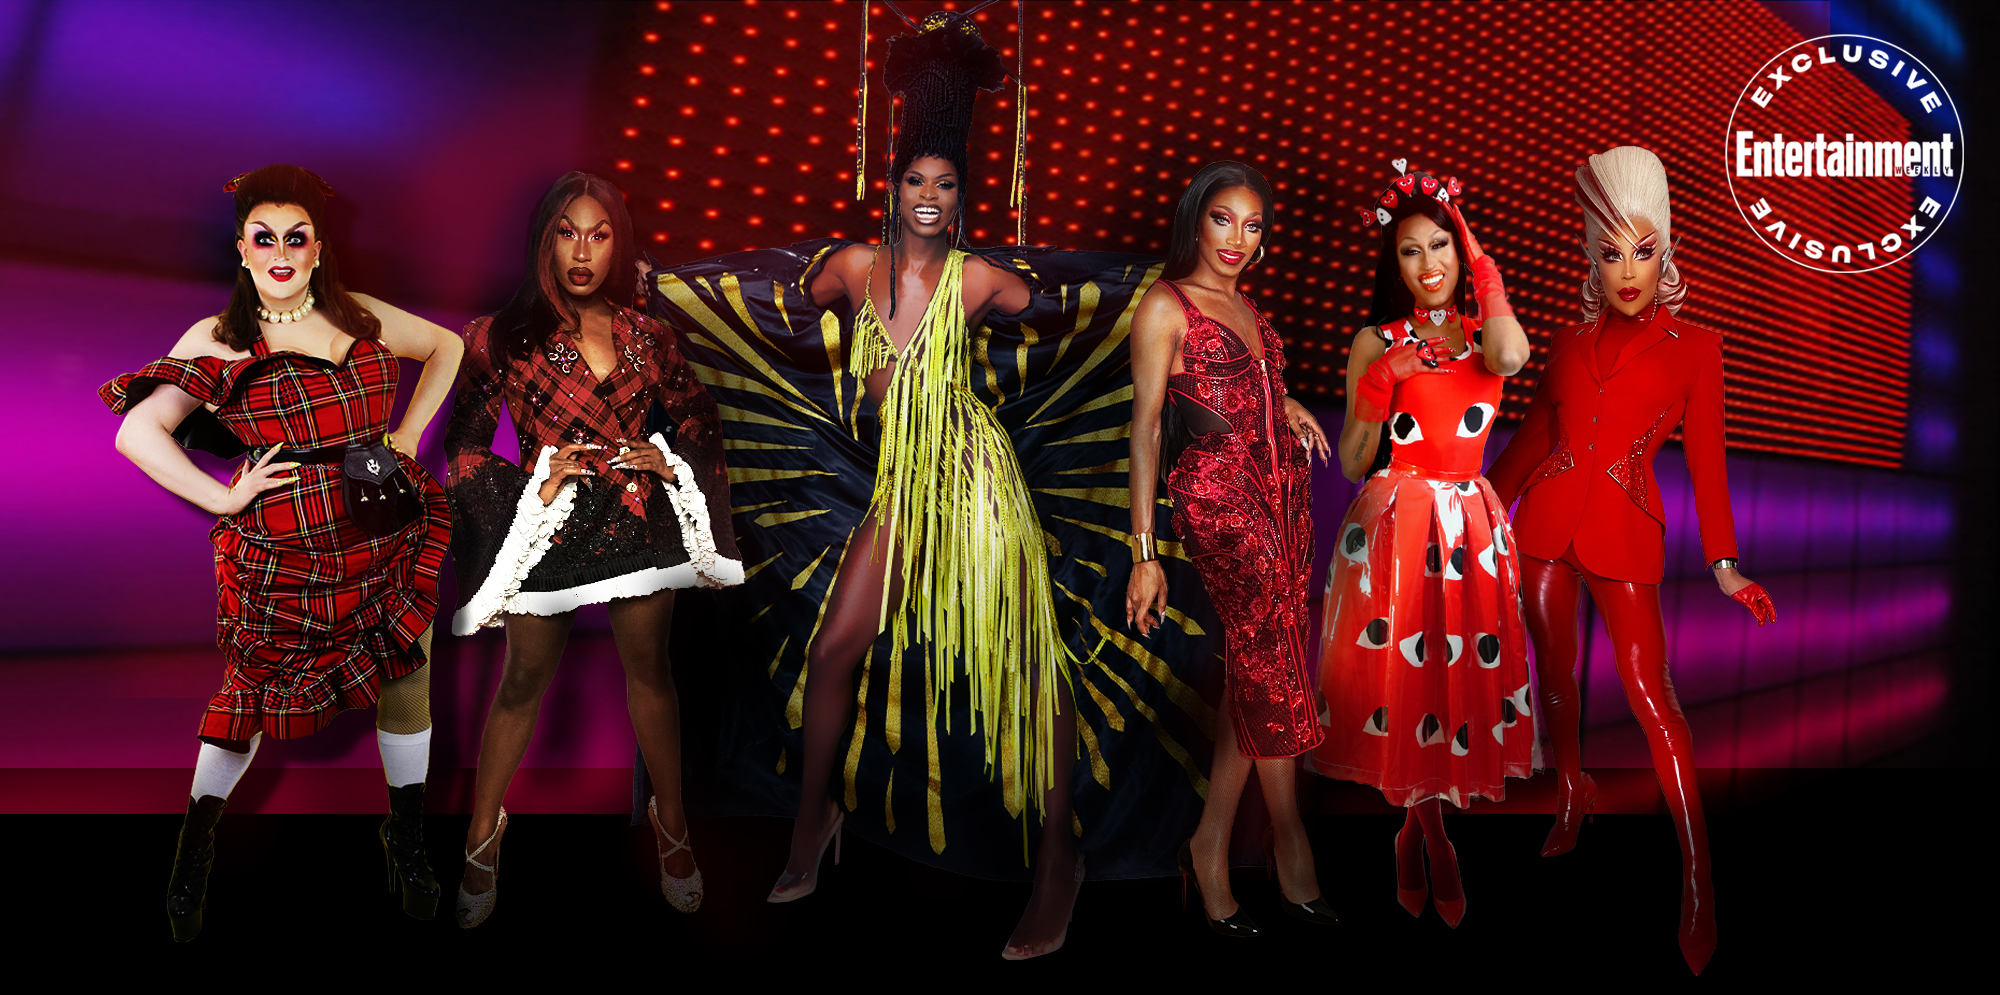 'RuPaul's Drag Race' winners Lawrence Chaney, Shea Coulee, Symone, Jaida Essence Hall, Priyanka, and Envy Peru unite for EW's LGBTQ+ Pride issue interview.